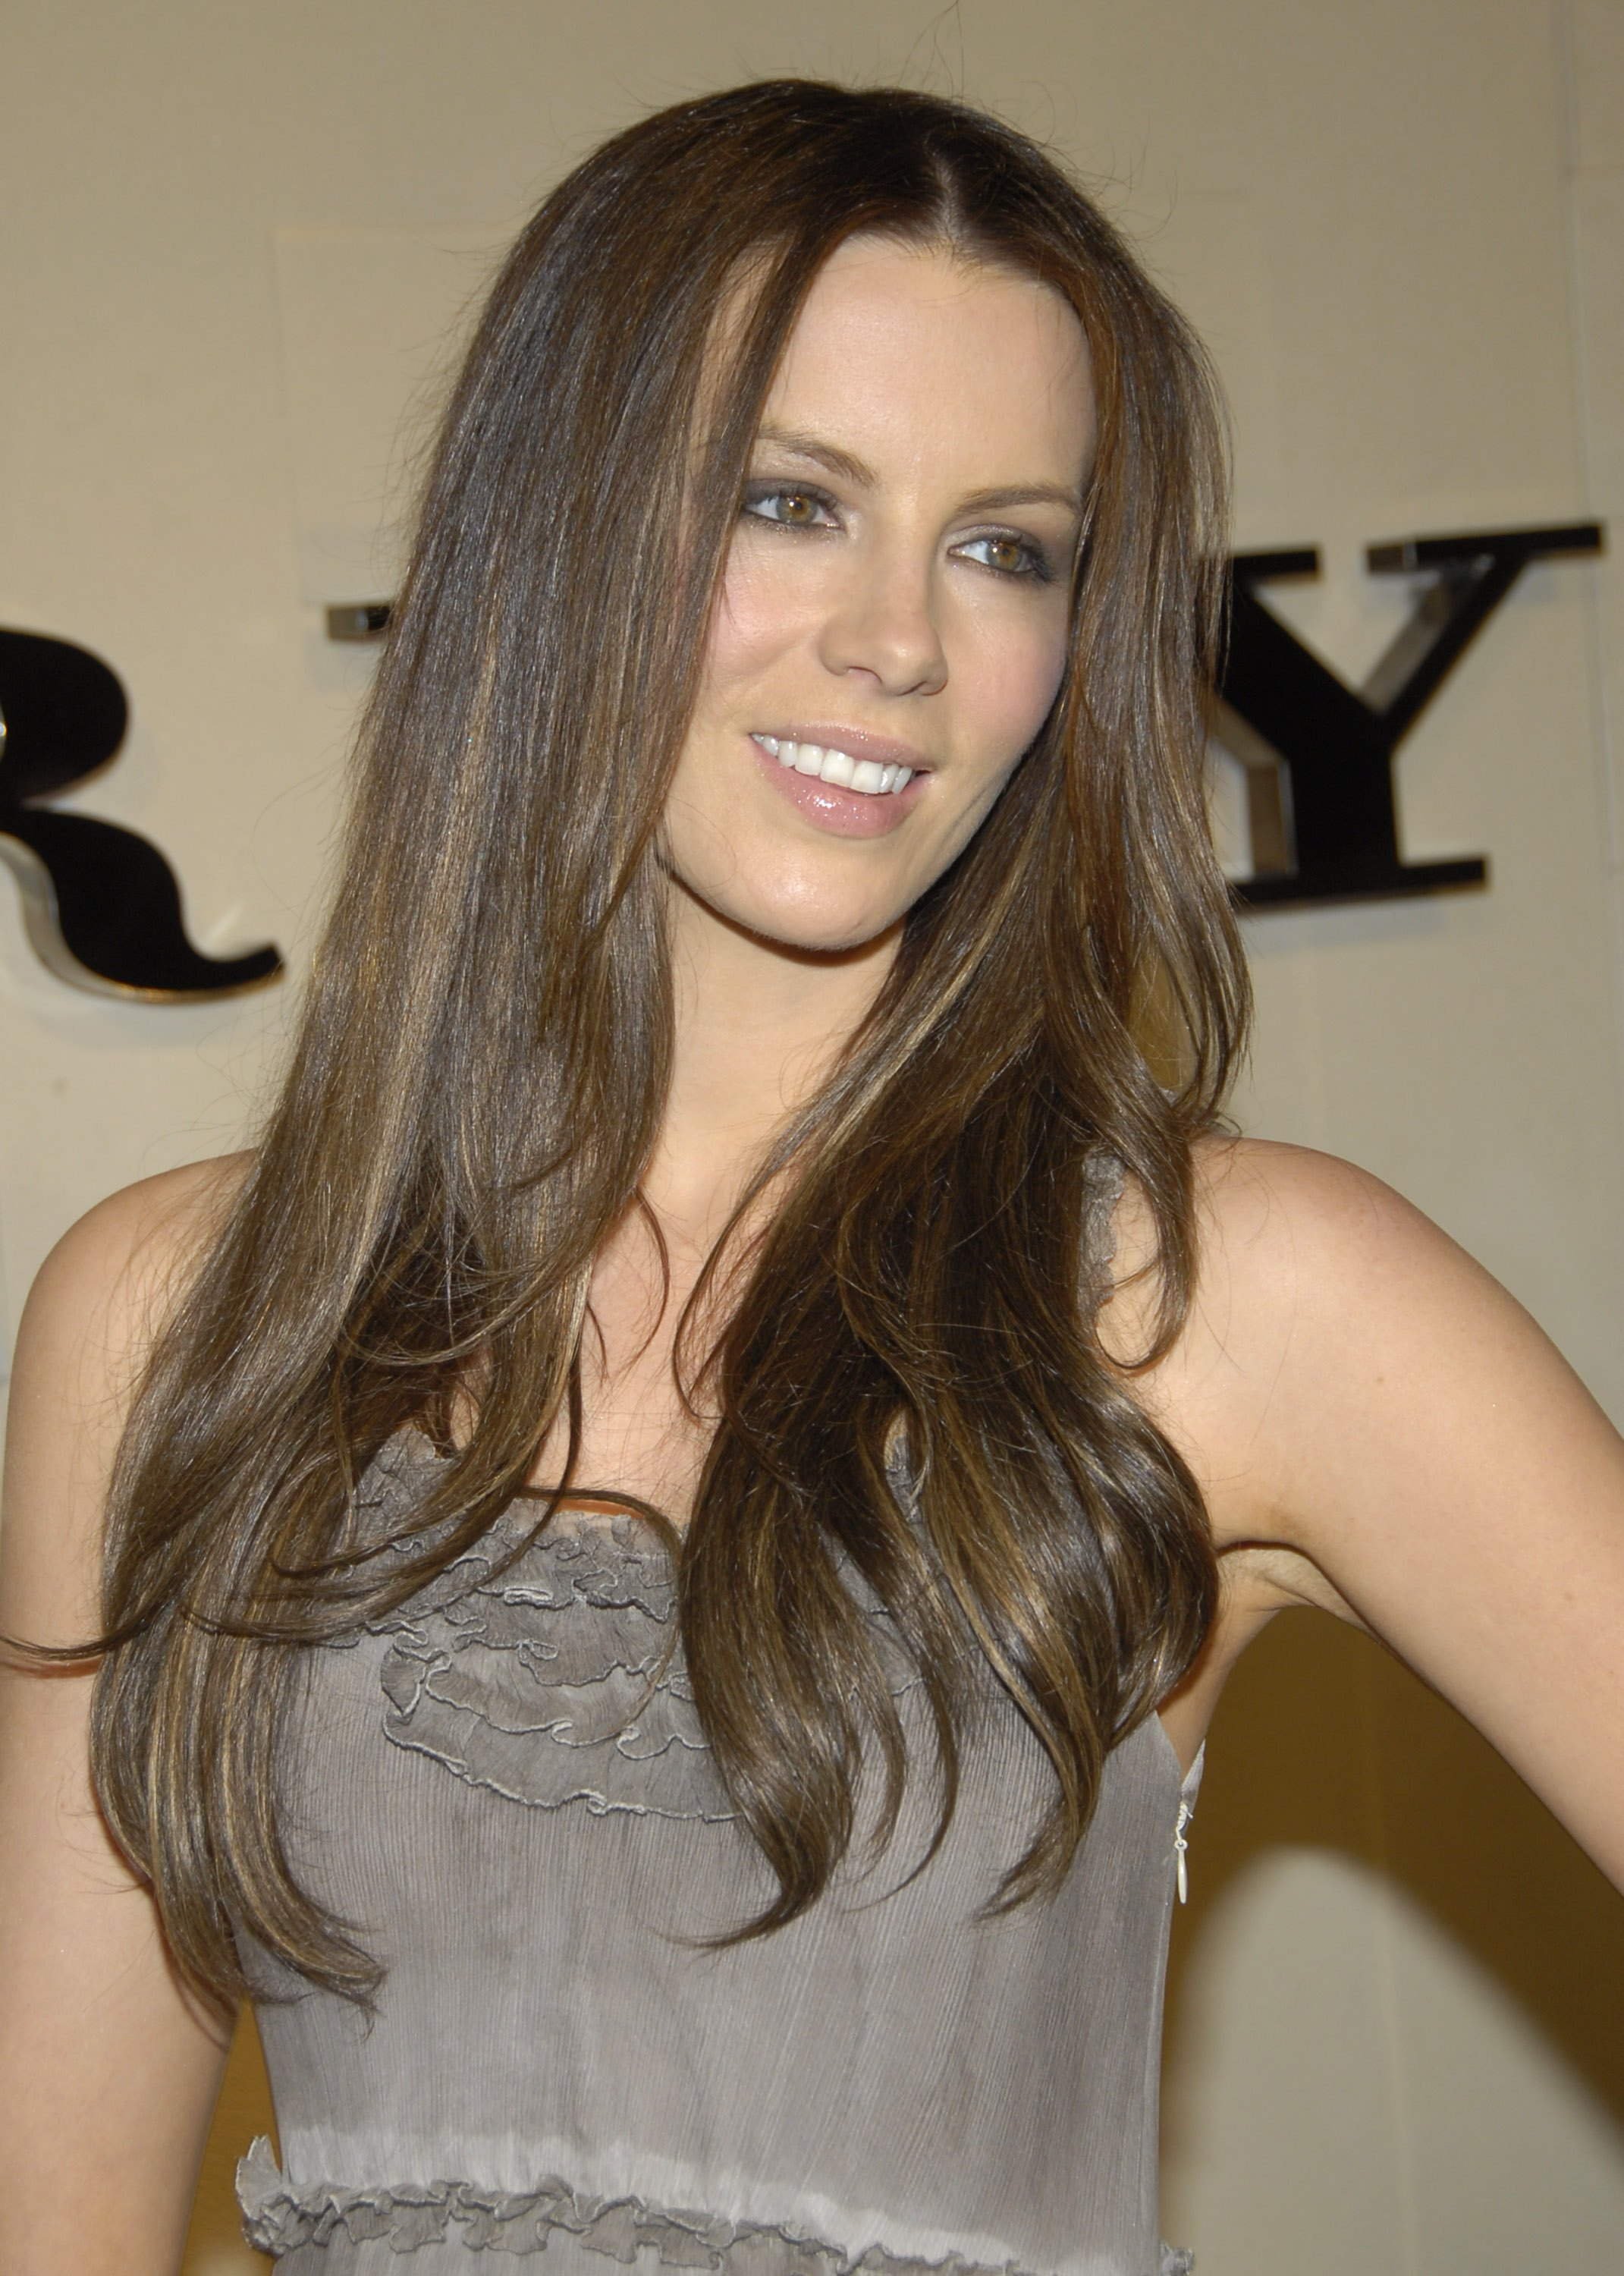 72460_Kate_Beckinsale__-_Reopening_celebration_of_the_Beverly_Hills_Burberry_store_CU_ISA02_122_164lo.JPG